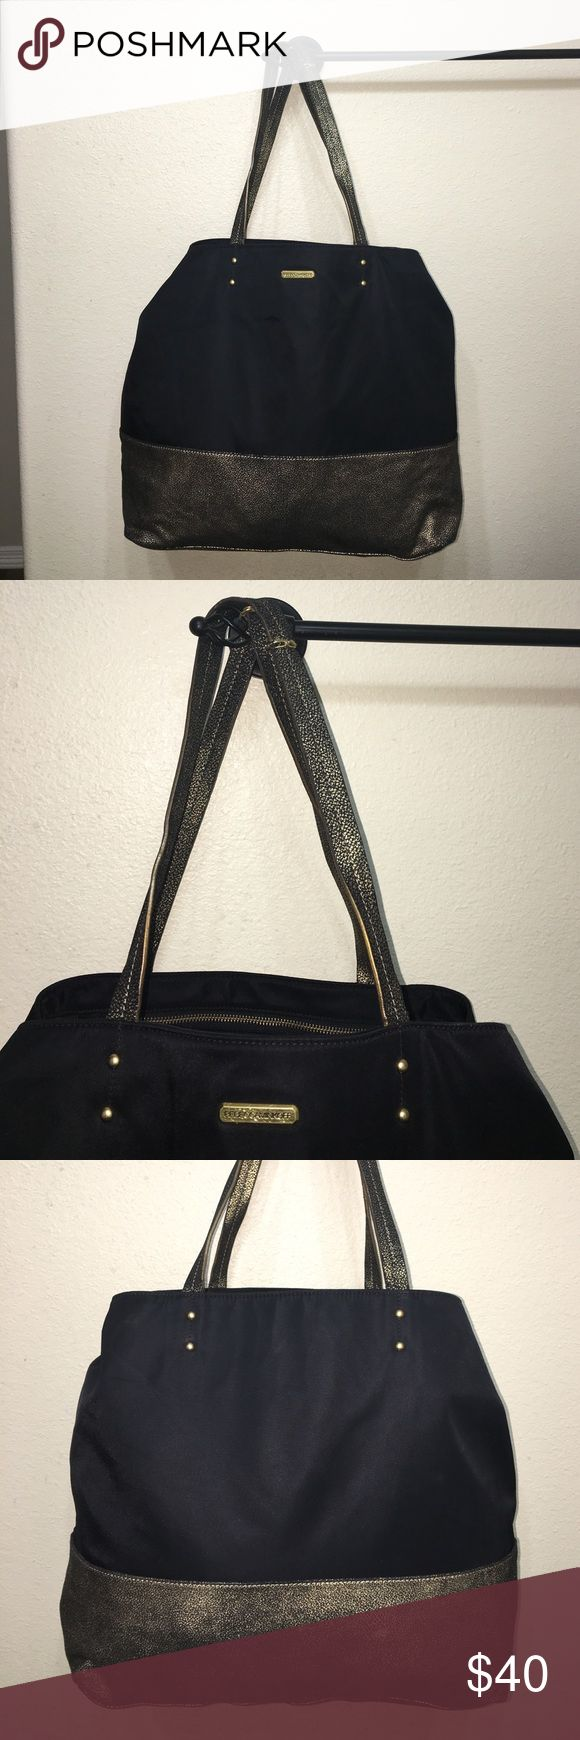 Auth Rebecca Minkoff black & gold tote bag purse Authentic Rebecca Minkoff black & gold nylon tote bag purse Measures 14.5 inches tall. 15 inches long 6.75 inches wide good condition some light scuffs and some of the gold has faded off bottom of tote. Handles show slight wear sold as is Rebecca Minkoff Bags Totes